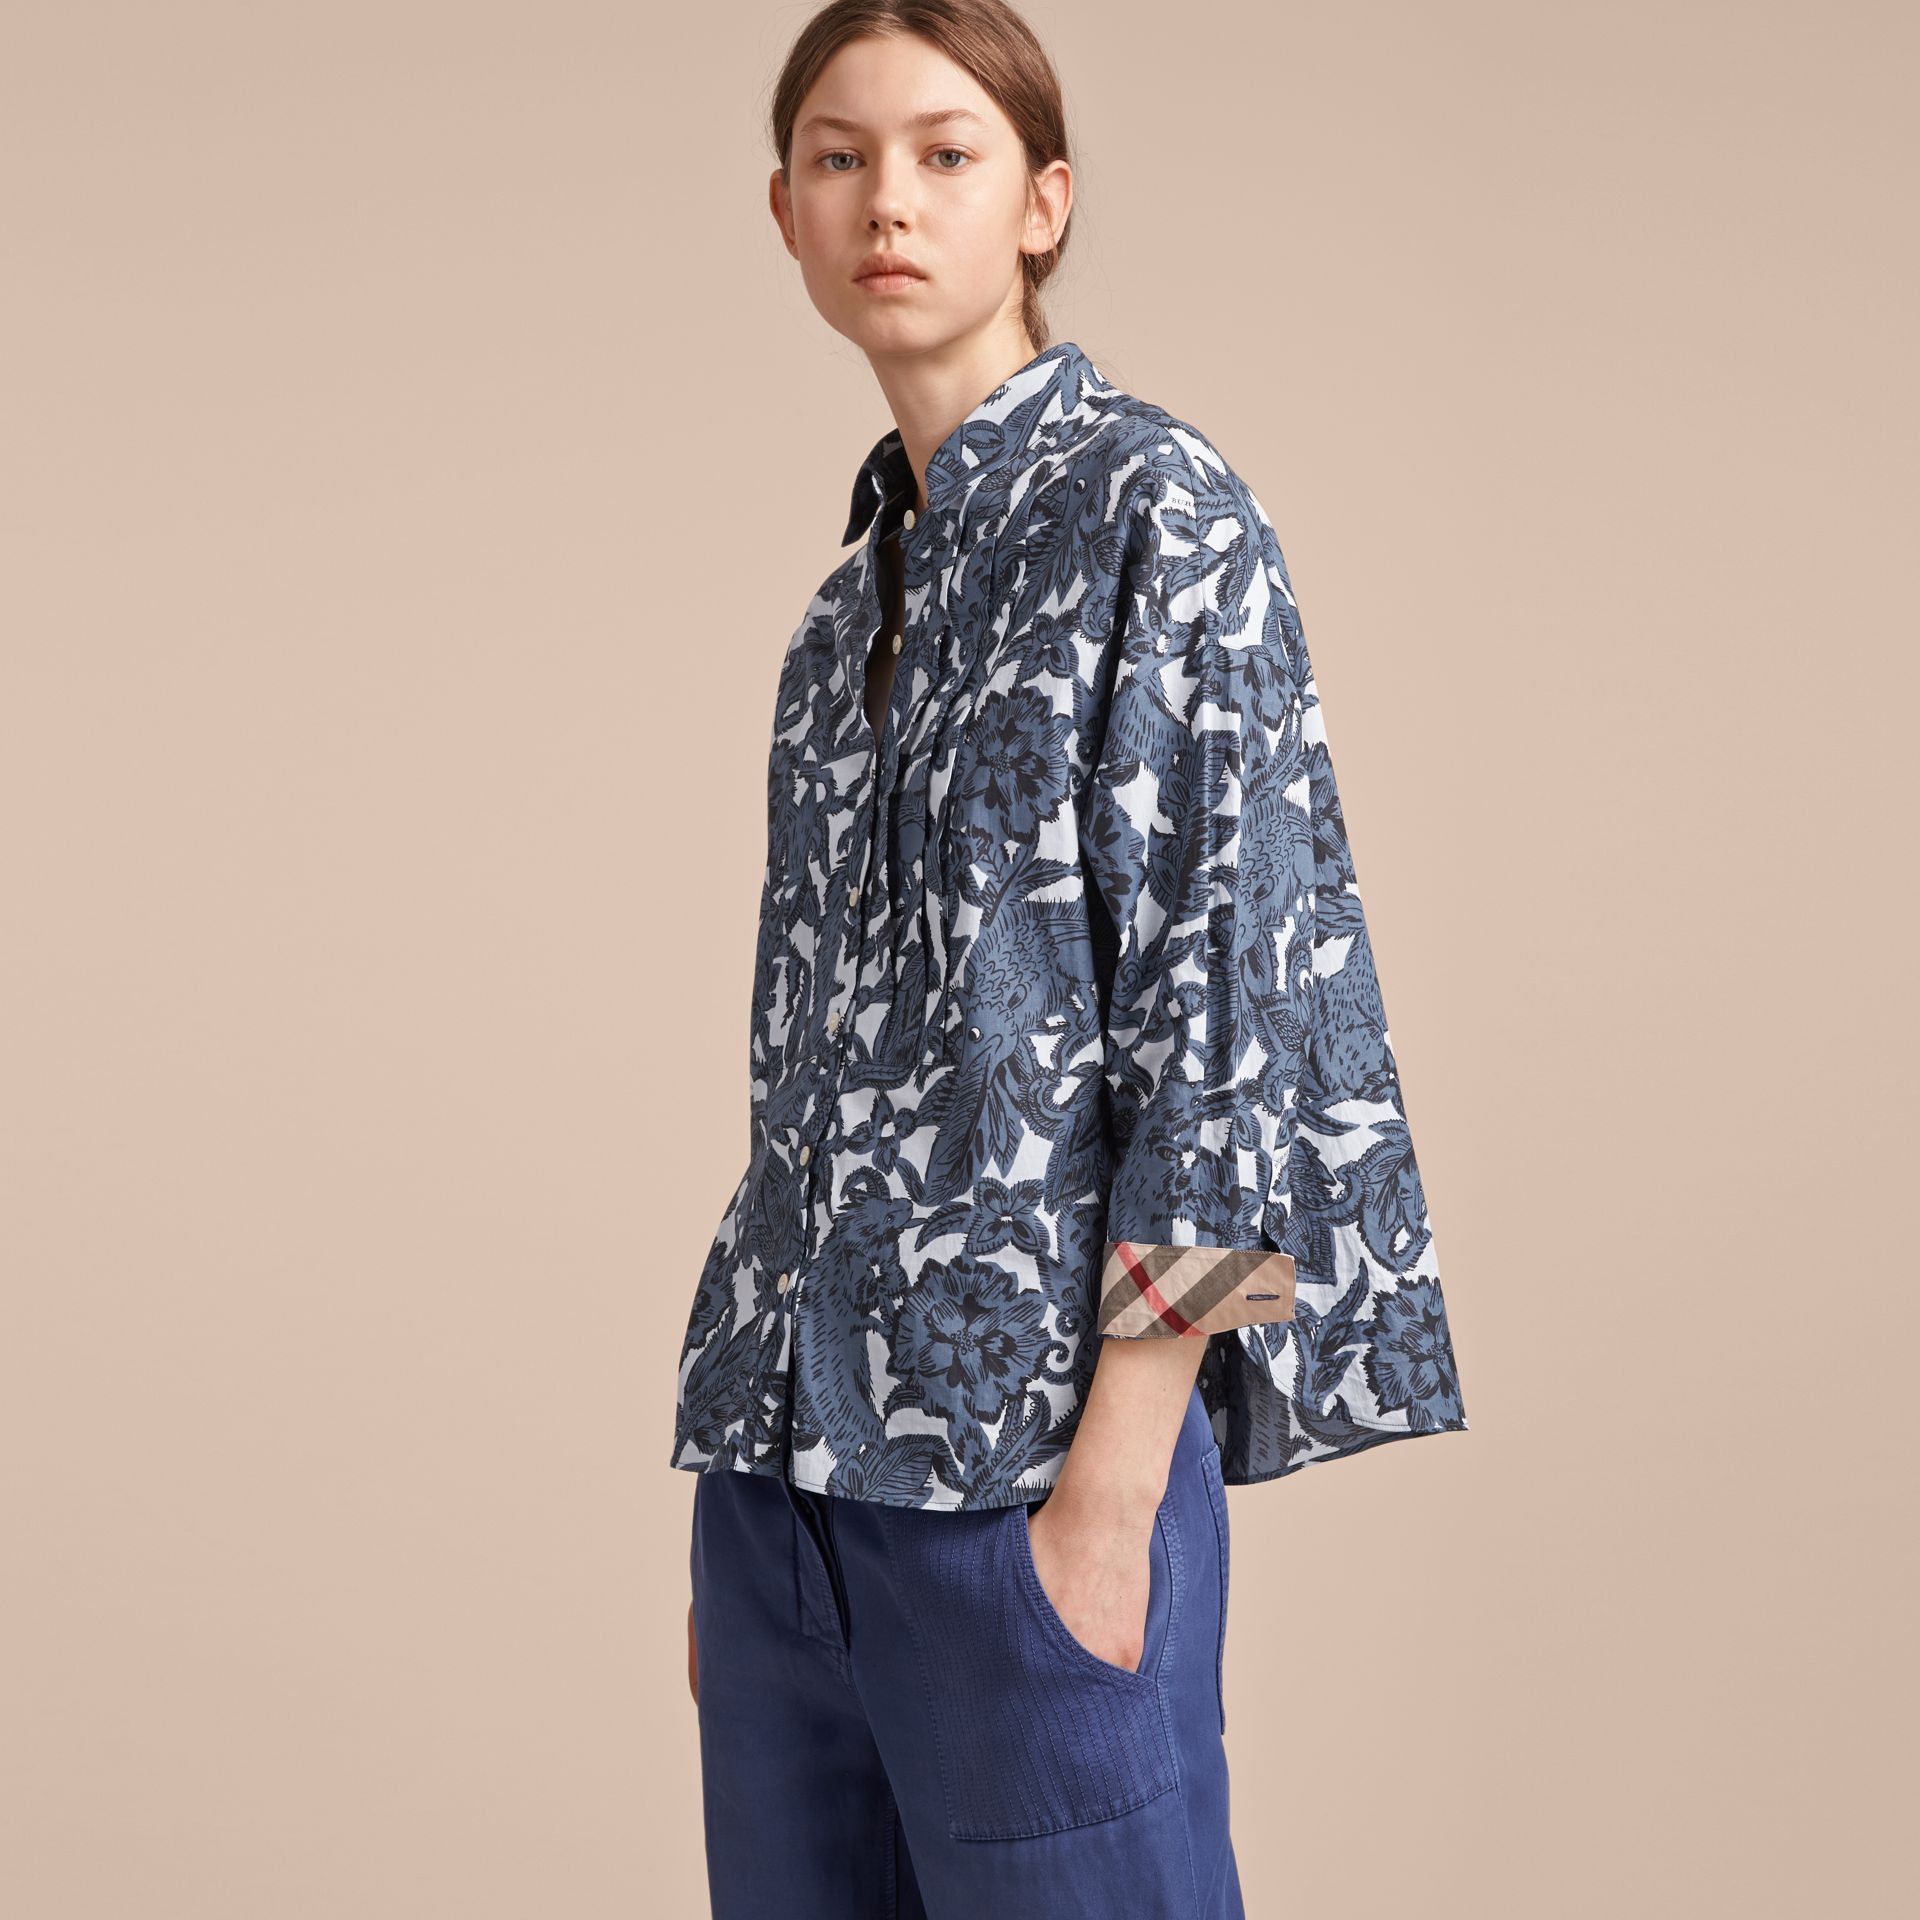 Pleated Bib Beasts Print Cotton Shirt in Stone Blue - Women | Burberry - gallery image 6